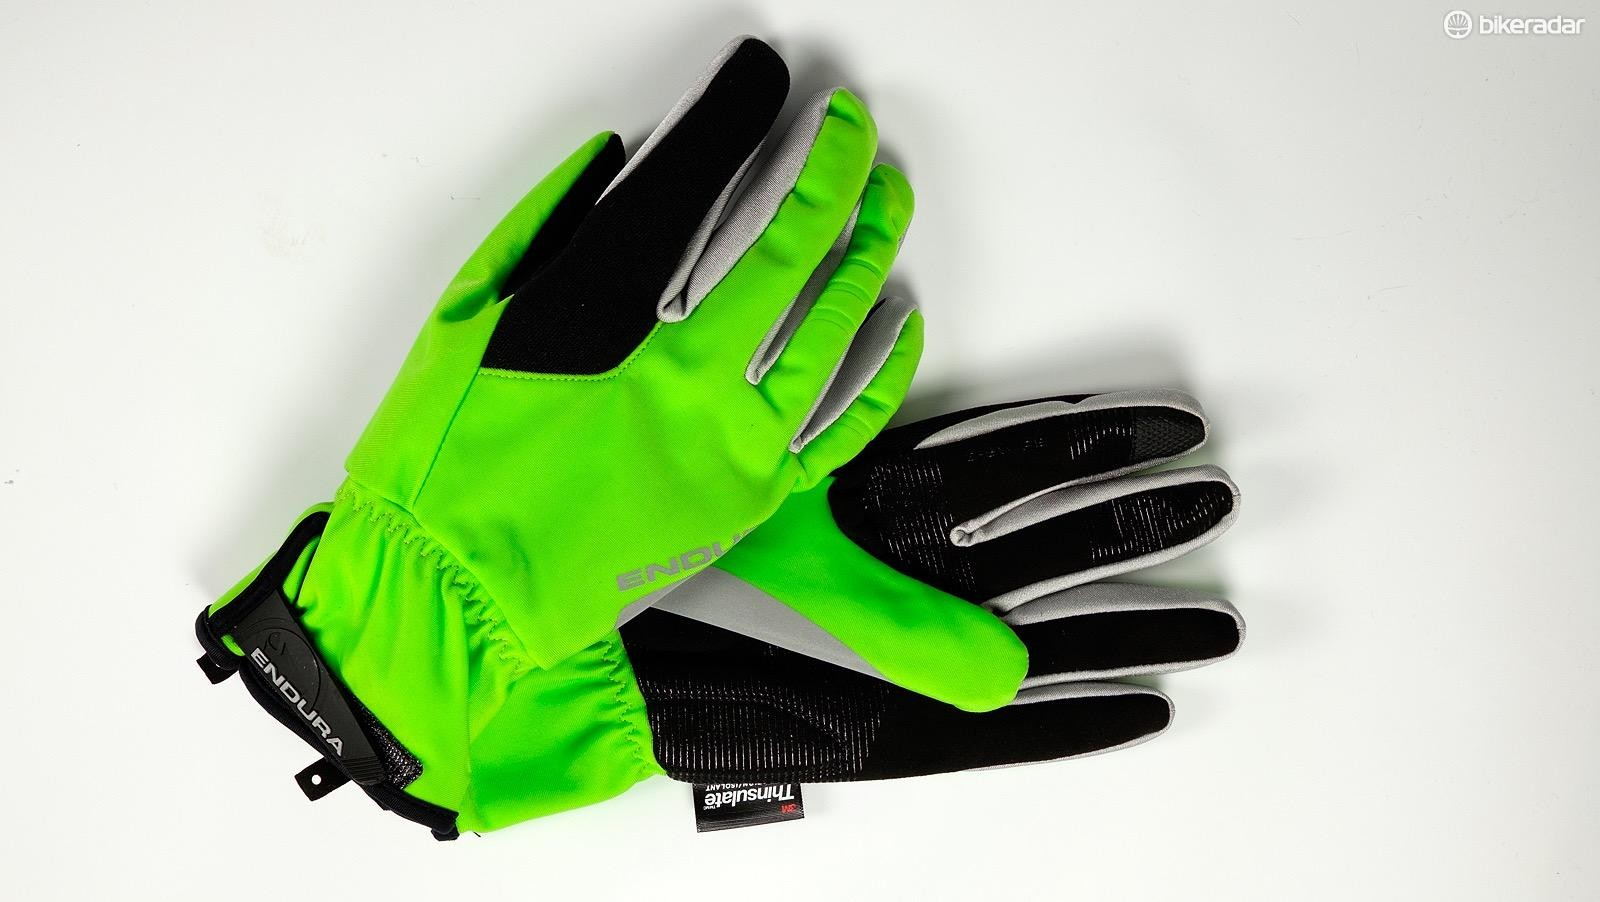 f7f046cea Best winter gloves for bike riding - BikeRadar